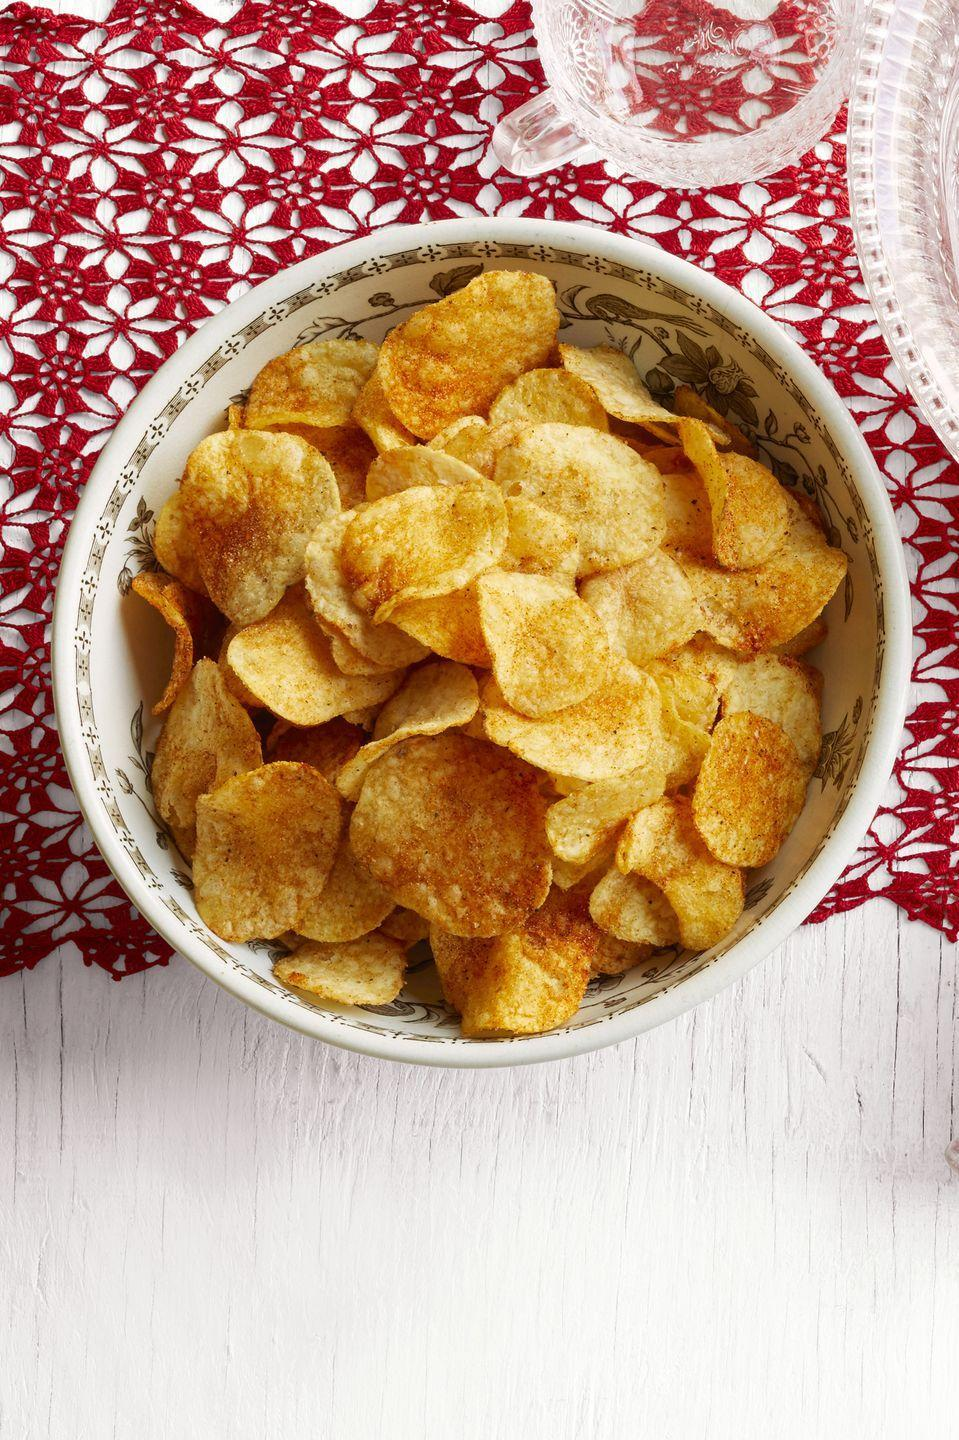 """<p>Potato chips are an easy addition to any spread of appetizers. Make these spiced-up chips that involves jazzing up a store-bought bag.</p><p><strong><a href=""""https://www.thepioneerwoman.com/food-cooking/recipes/a34272361/spiced-up-potato-chips-recipe/"""" rel=""""nofollow noopener"""" target=""""_blank"""" data-ylk=""""slk:Get the recipe."""" class=""""link rapid-noclick-resp"""">Get the recipe.</a></strong></p><p><a class=""""link rapid-noclick-resp"""" href=""""https://go.redirectingat.com?id=74968X1596630&url=https%3A%2F%2Fwww.walmart.com%2Fsearch%2F%3Fquery%3Dpioneer%2Bwoman%2Bserving%2Bbowls&sref=https%3A%2F%2Fwww.thepioneerwoman.com%2Ffood-cooking%2Fmeals-menus%2Fg34272733%2Fchristmas-party-appetizers%2F"""" rel=""""nofollow noopener"""" target=""""_blank"""" data-ylk=""""slk:SHOP SERVING BOWLS"""">SHOP SERVING BOWLS</a></p>"""